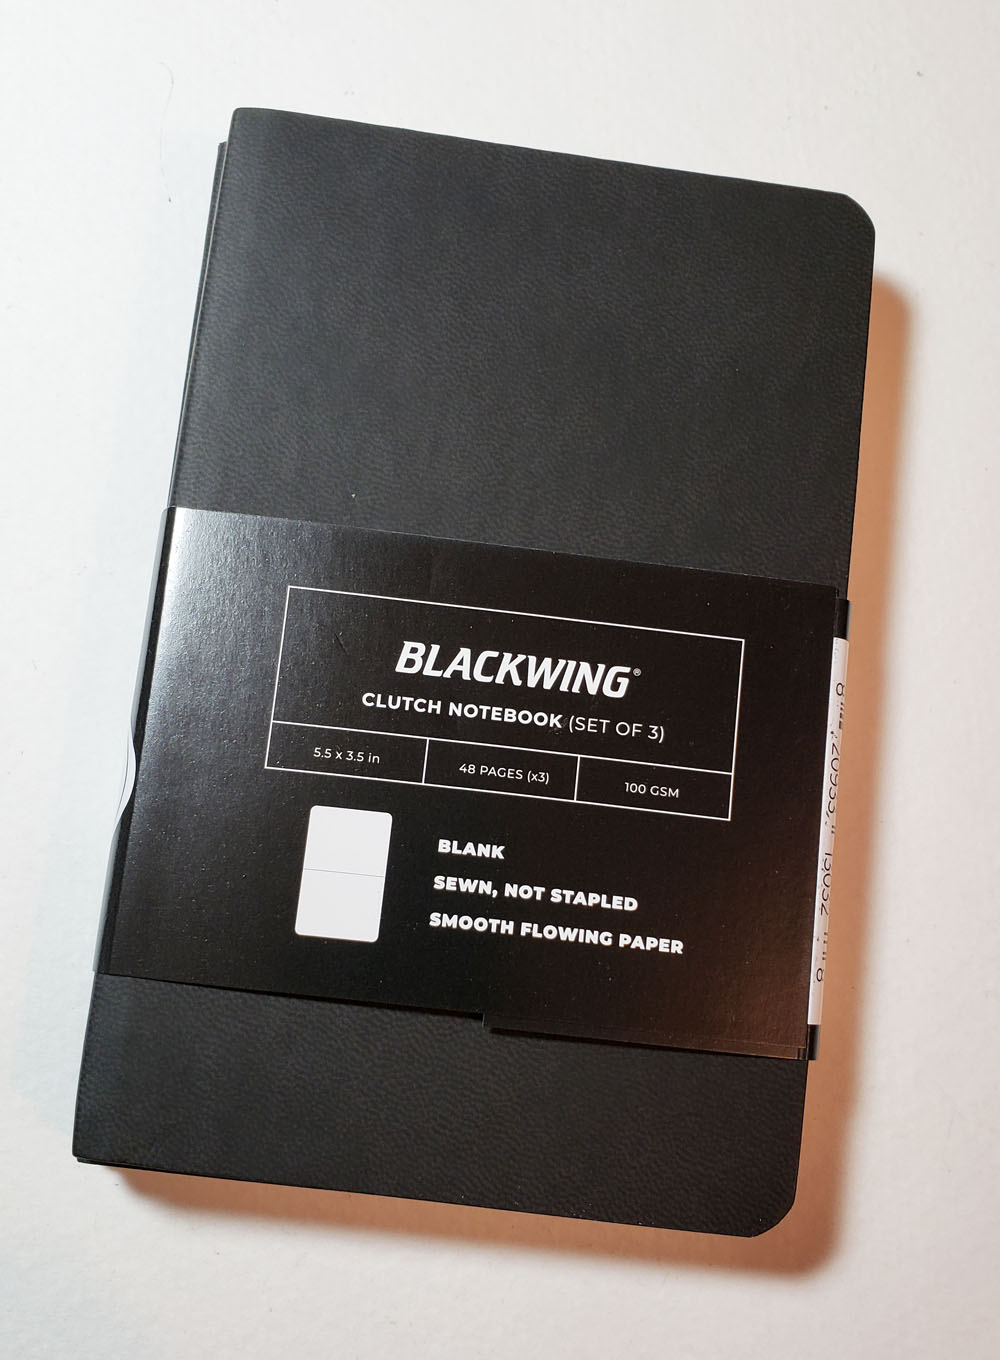 2 - Blackwing Clutch back